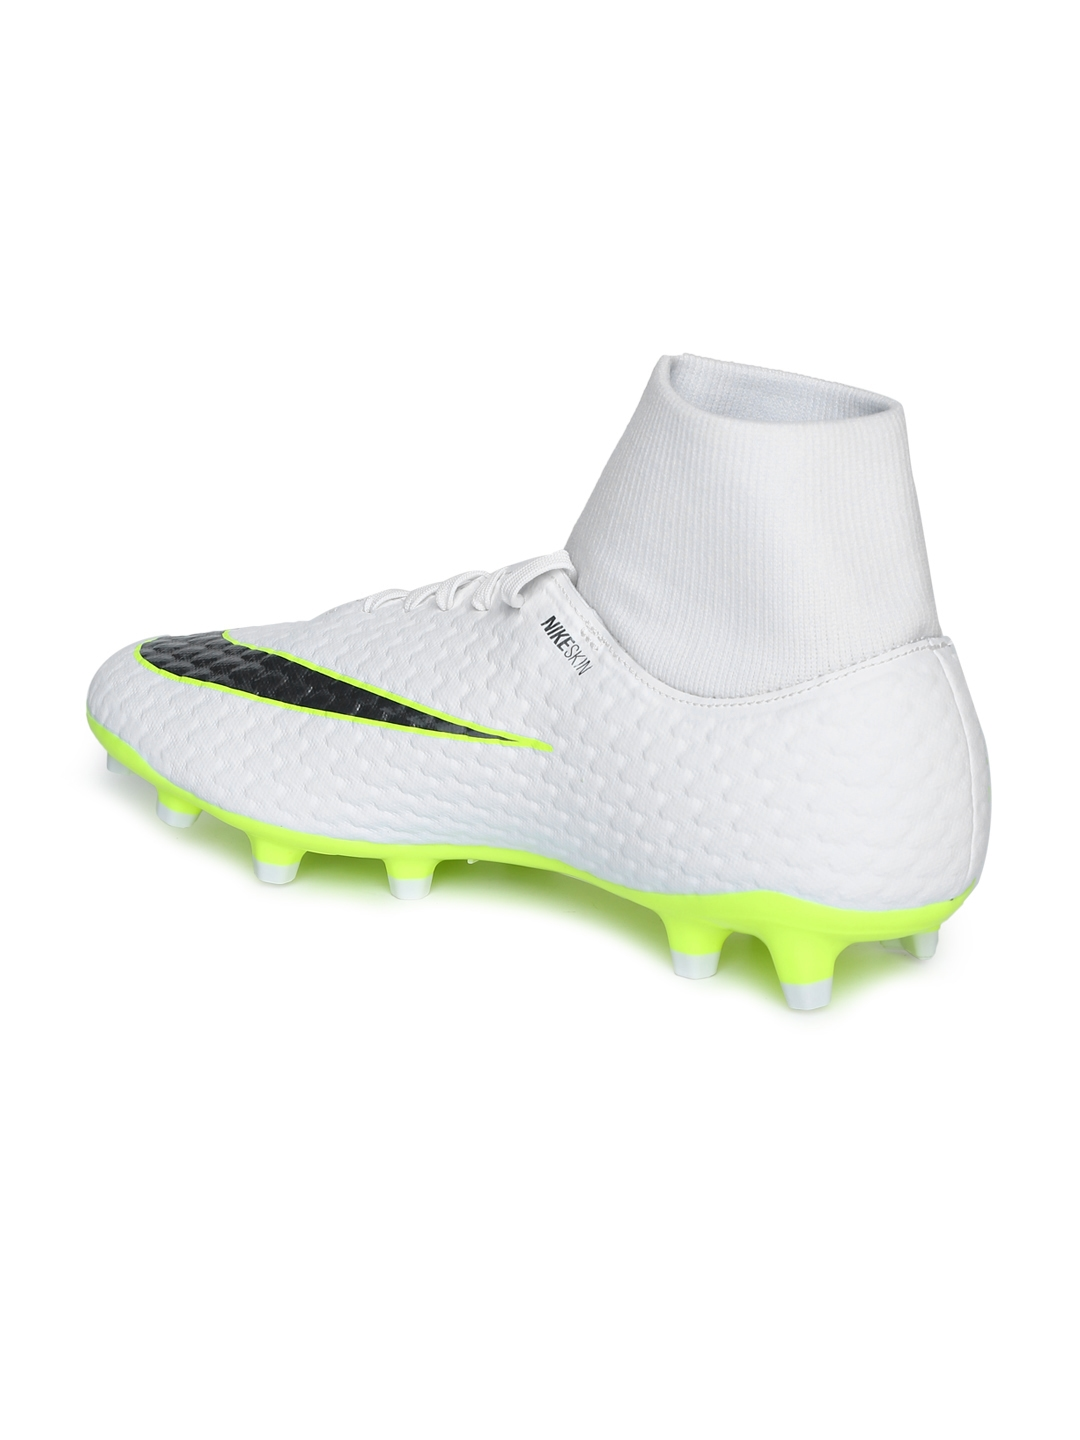 73d01644f Buy Nike Men White   Green PHANTOM 3 ACADEMY DF FG Football Shoes ...